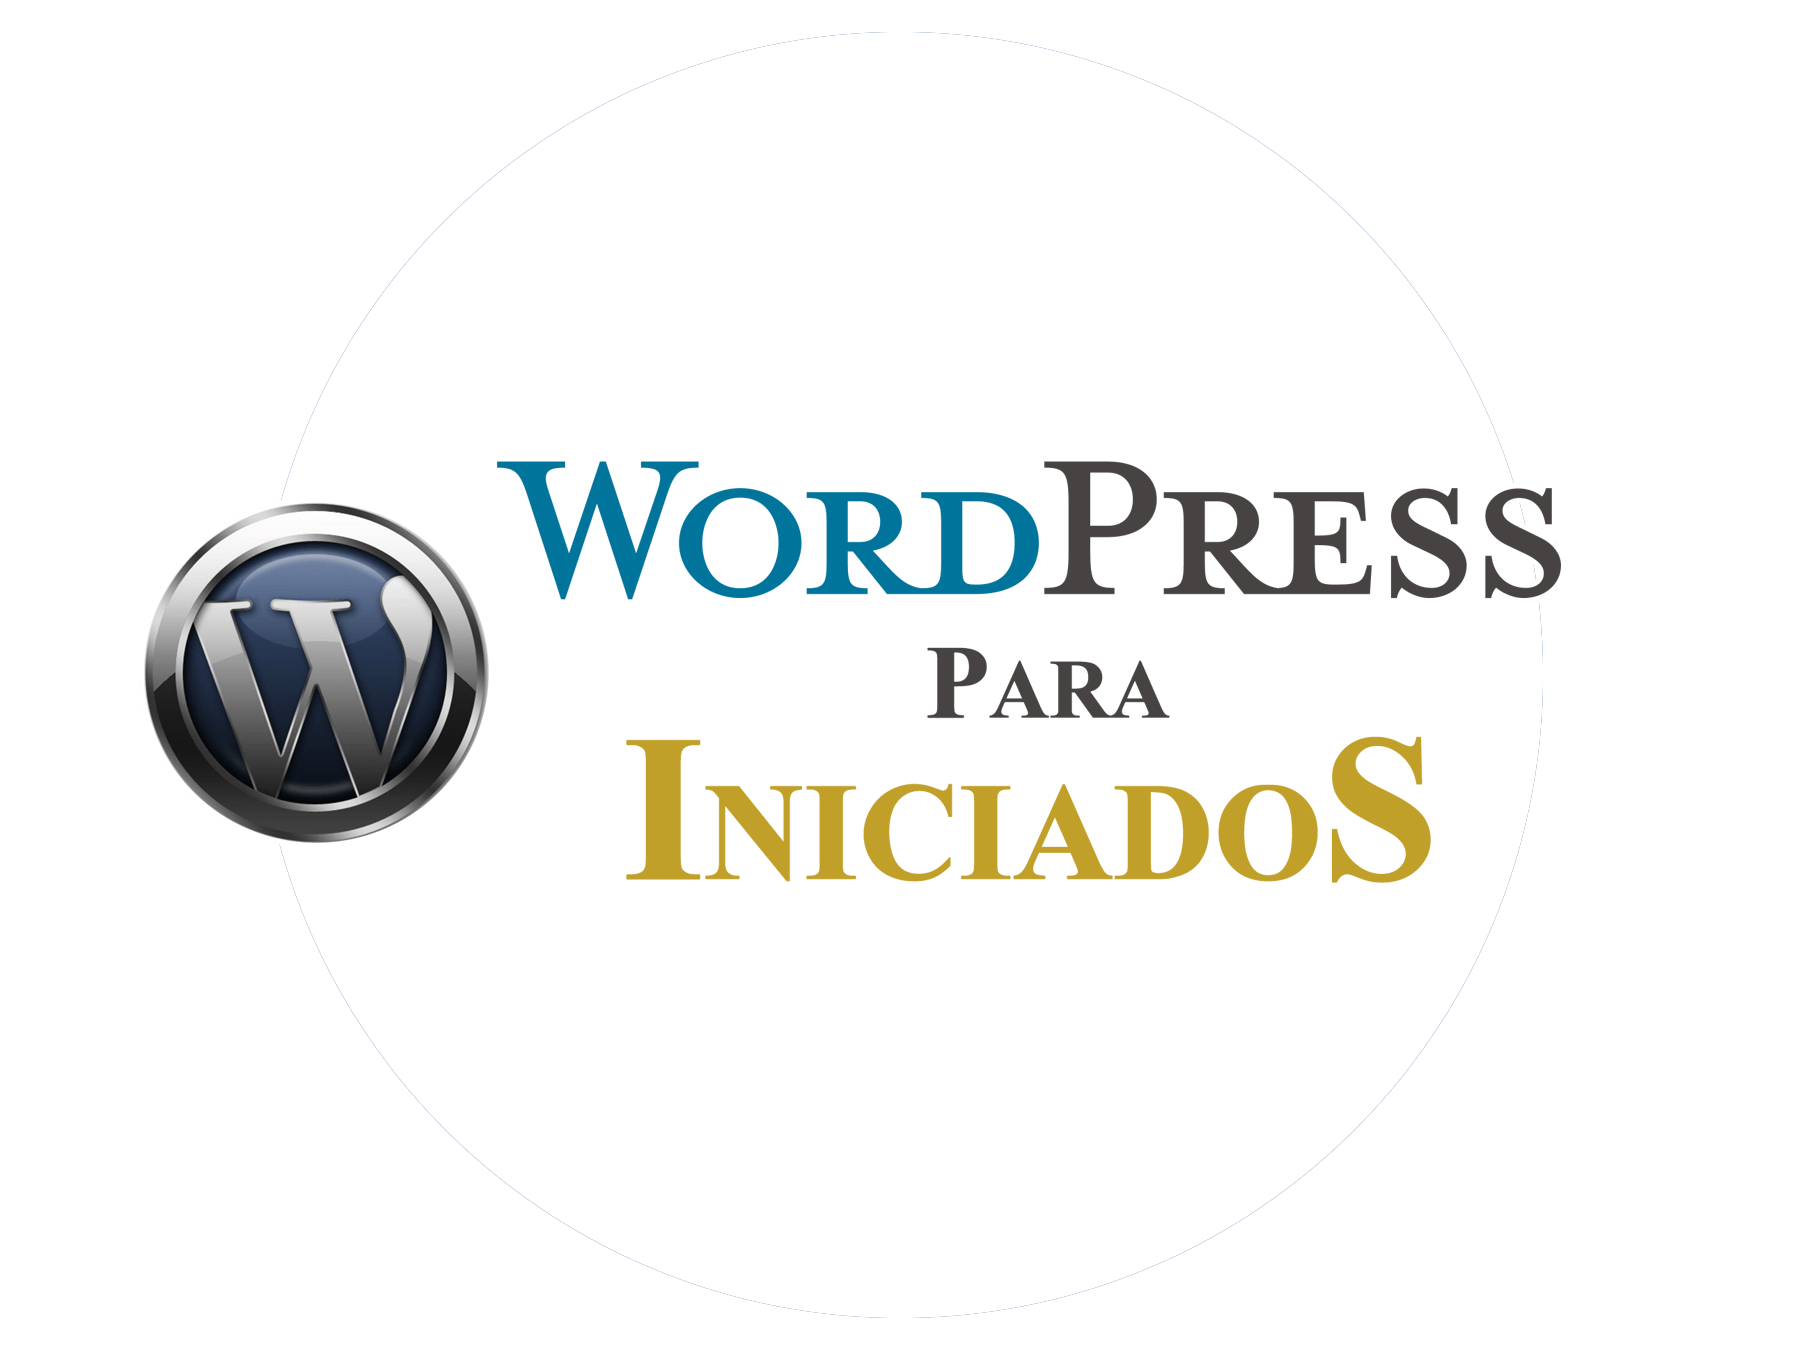 Wordpress para Iniciados course image